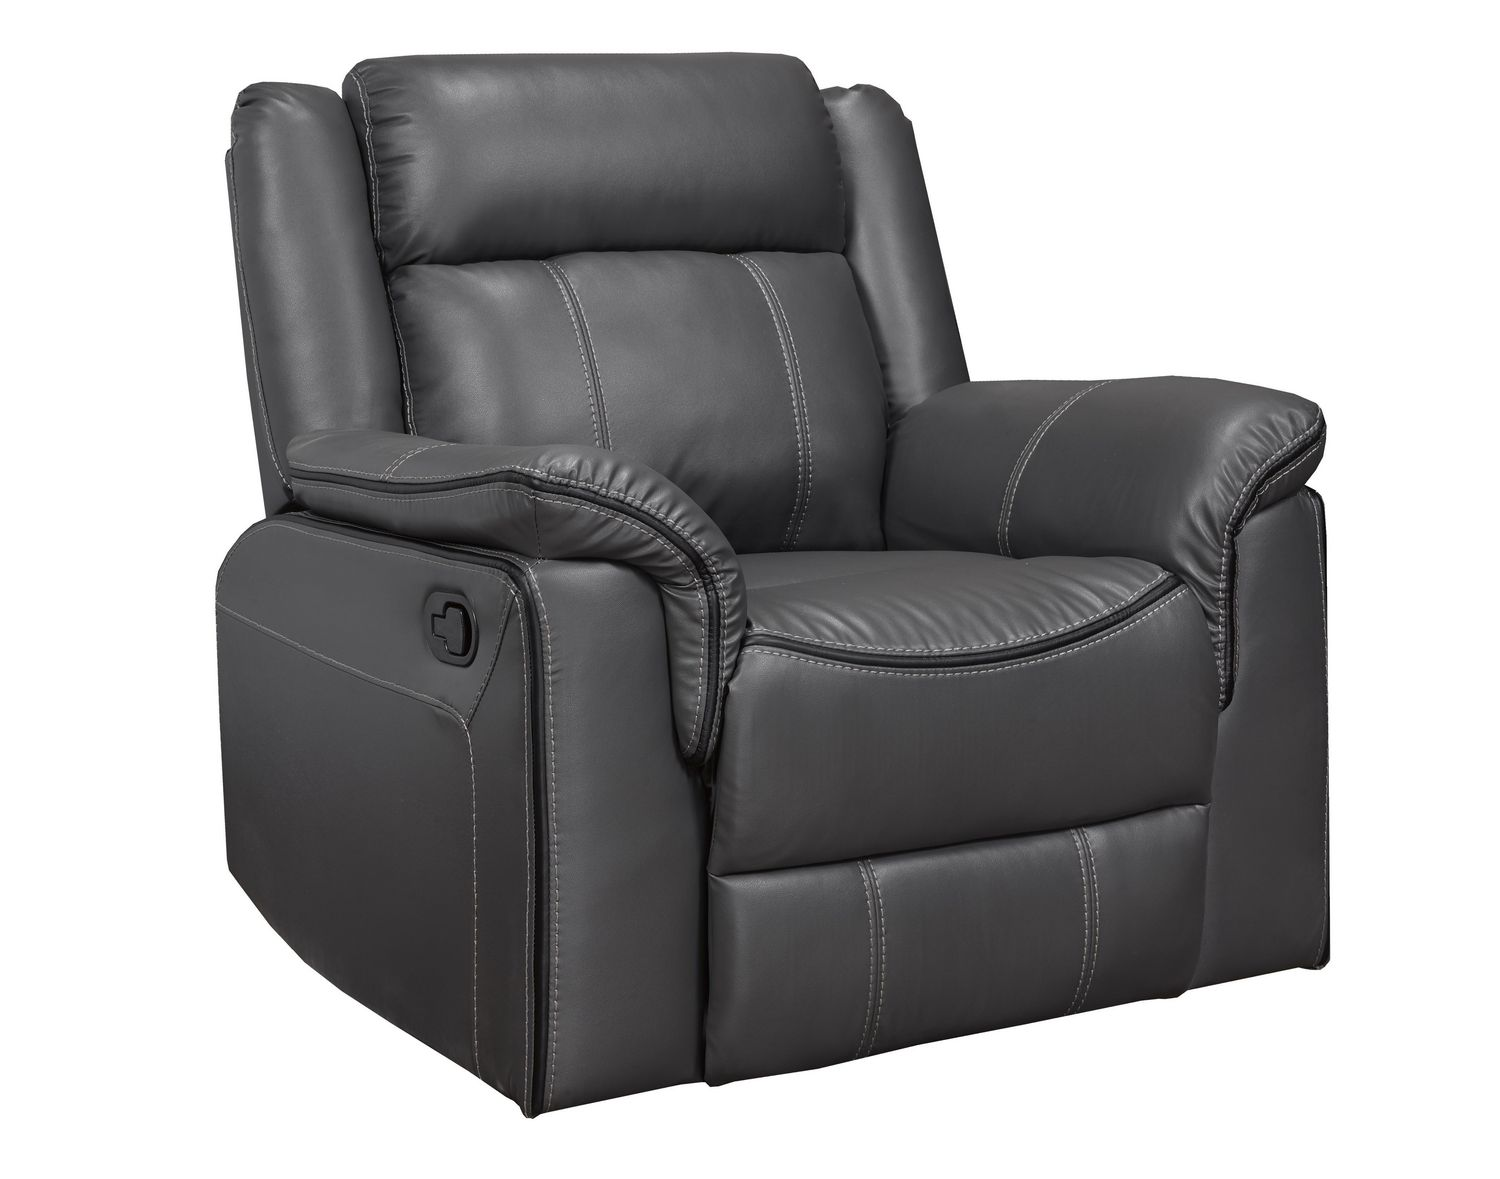 K Living Emma Leathaire Rocker Recliner Chair In Grey Walmart Canada